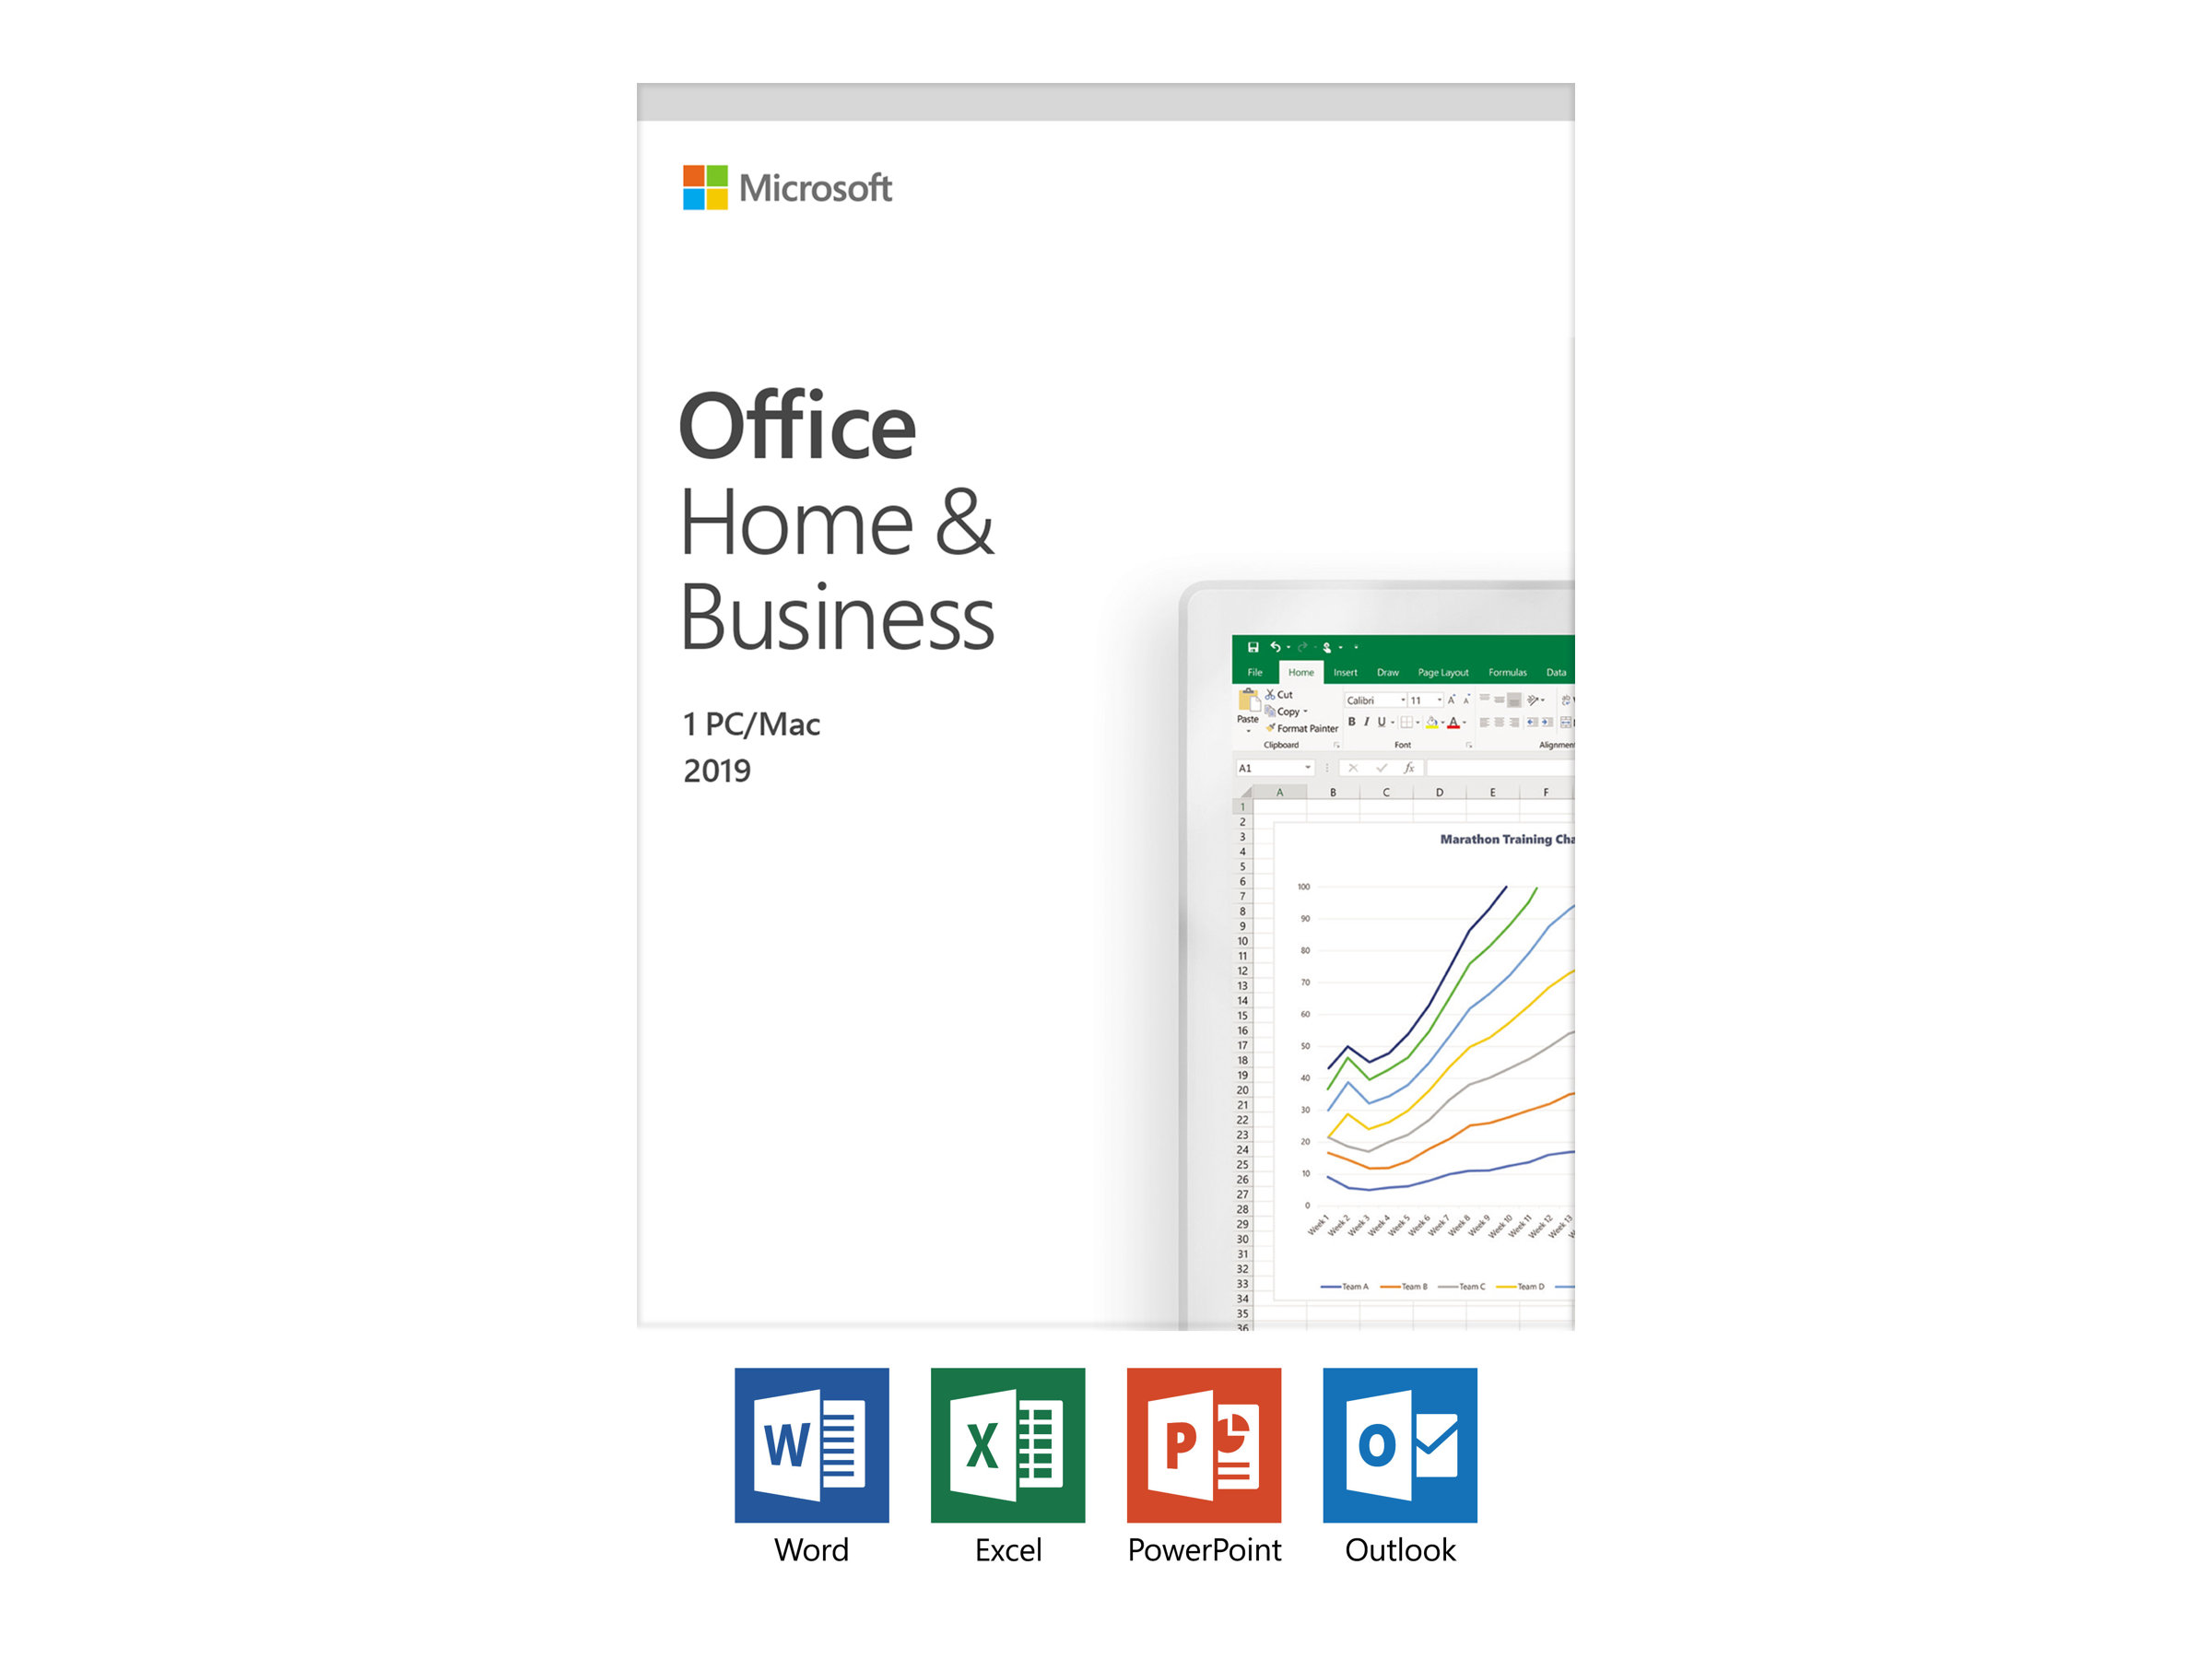 Microsoft Office Home and Business 2019 - Box-Pack - 1 PC/Mac - ohne Medien, P6 - Win, Mac - Italienisch